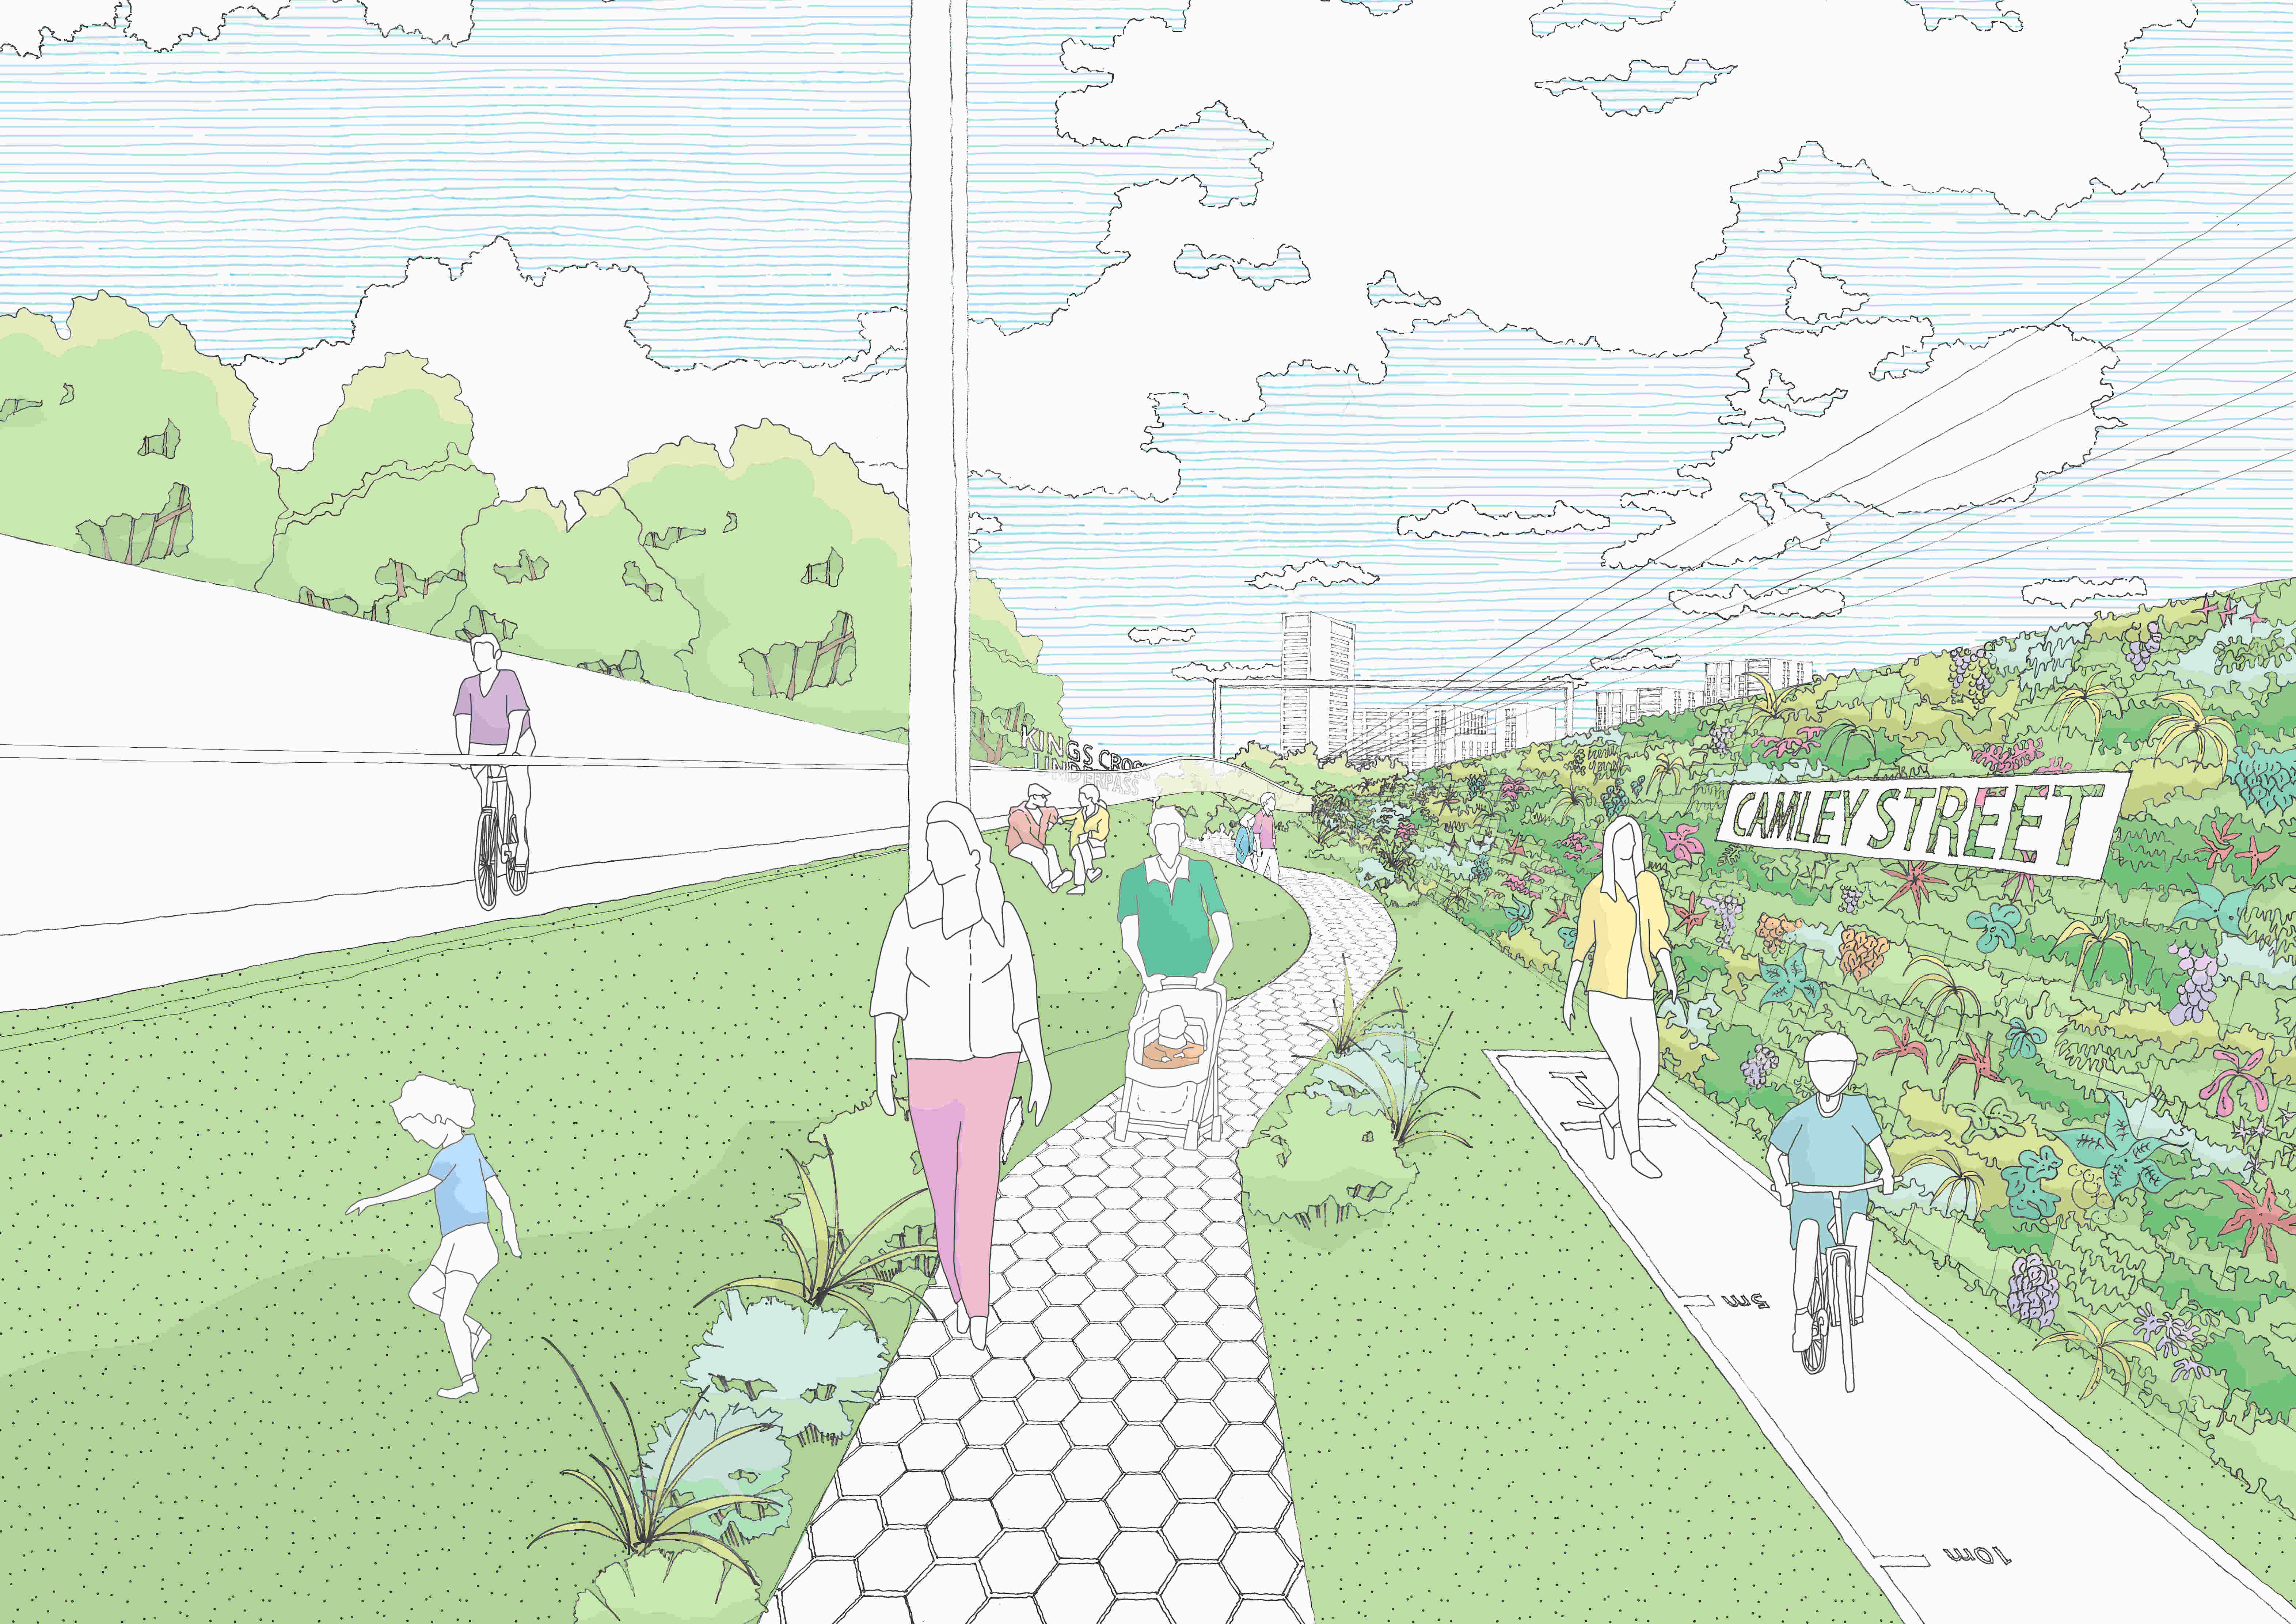 The Camden Highline will feature a walkway for pedestrians and cyclists. Image by Camden Town Unlimited.